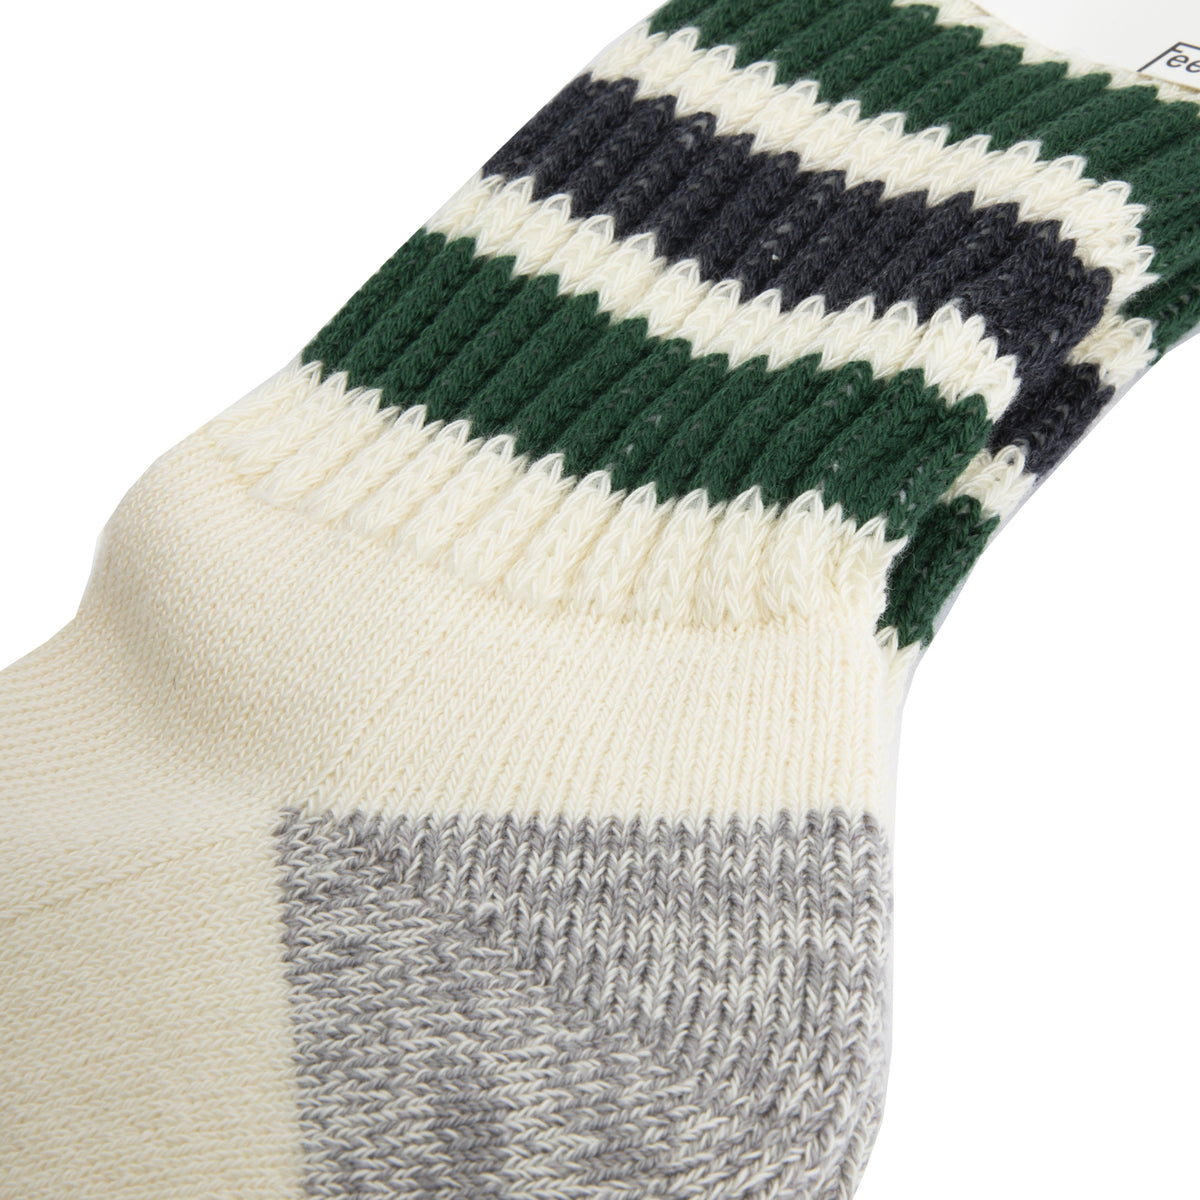 Rototo - Coarse Ribbed Old School Socks - Green/Charcoal